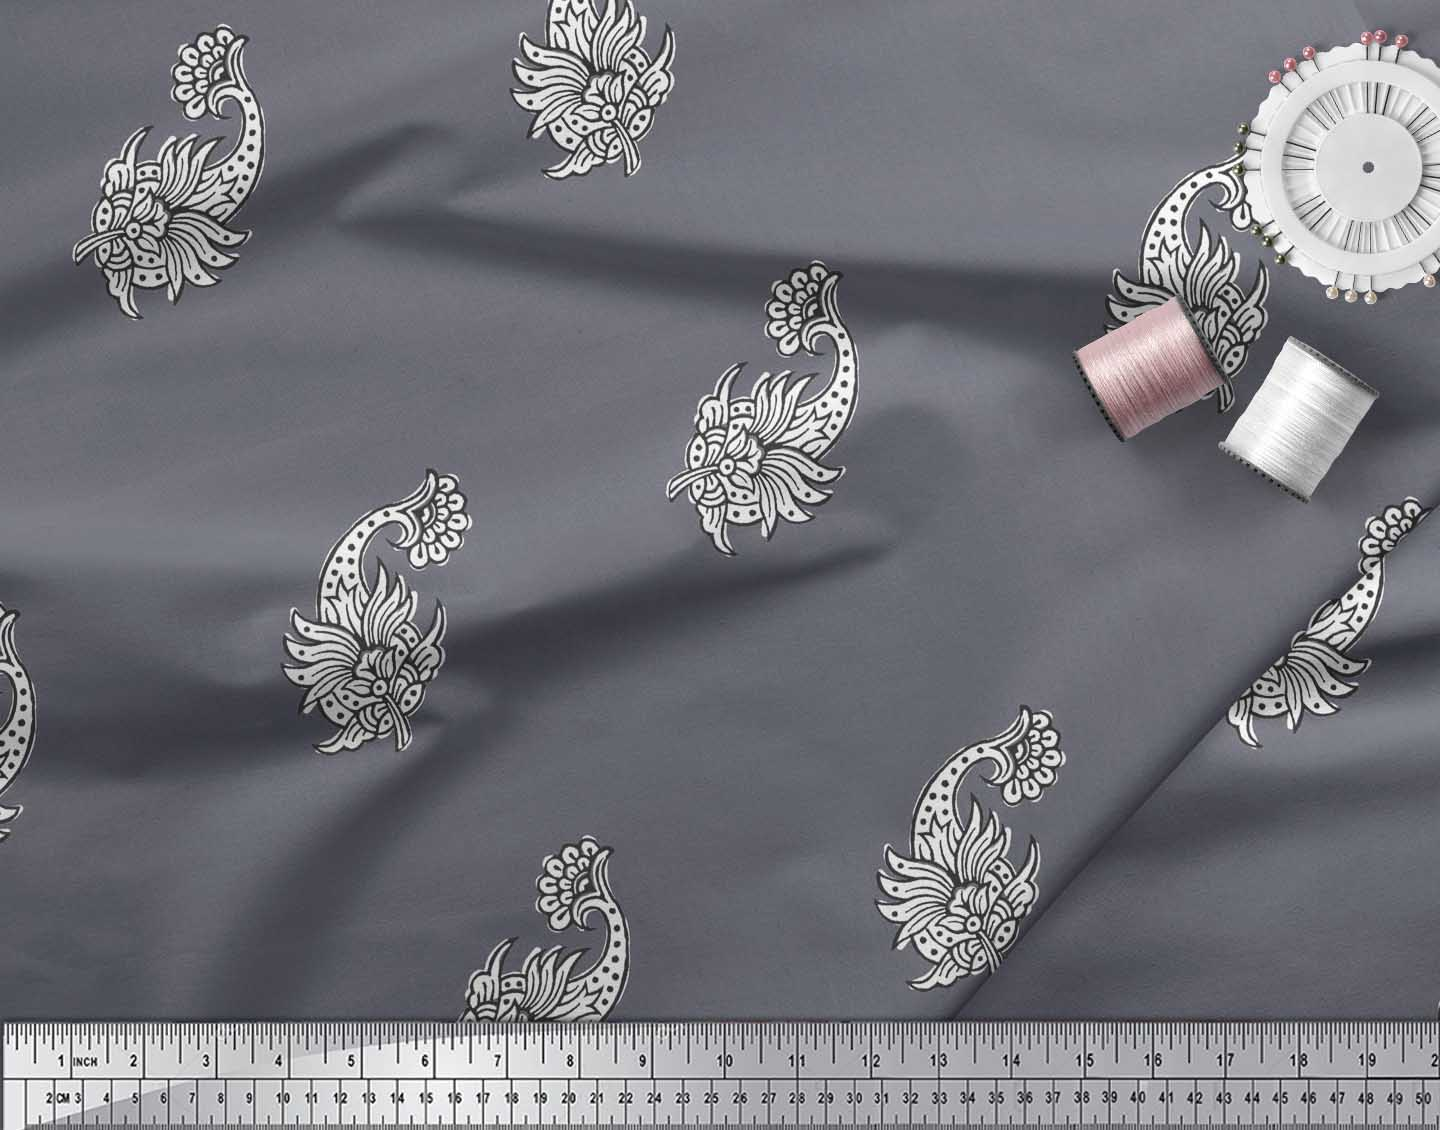 Soimoi-Cotton-Poplin-Fabric-Floral-Block-Printed-Fabric-1-metre-EIL thumbnail 4